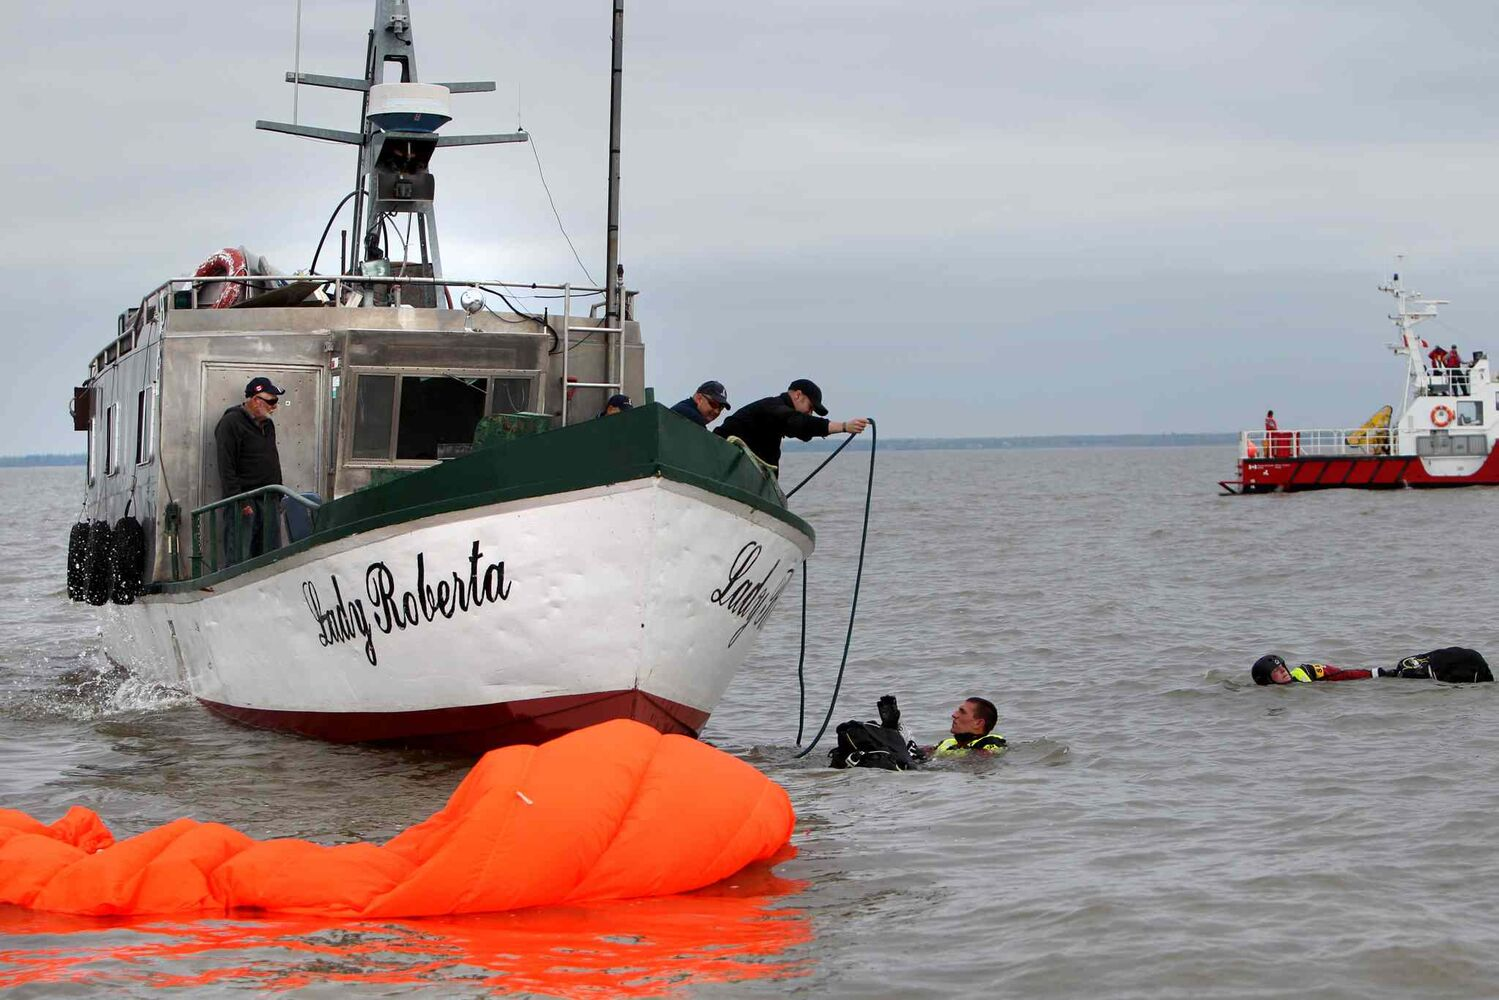 SAR techs get help from the Lady Roberta's 'crew.' (Ruth Bonneville / Winnipeg Free Press)